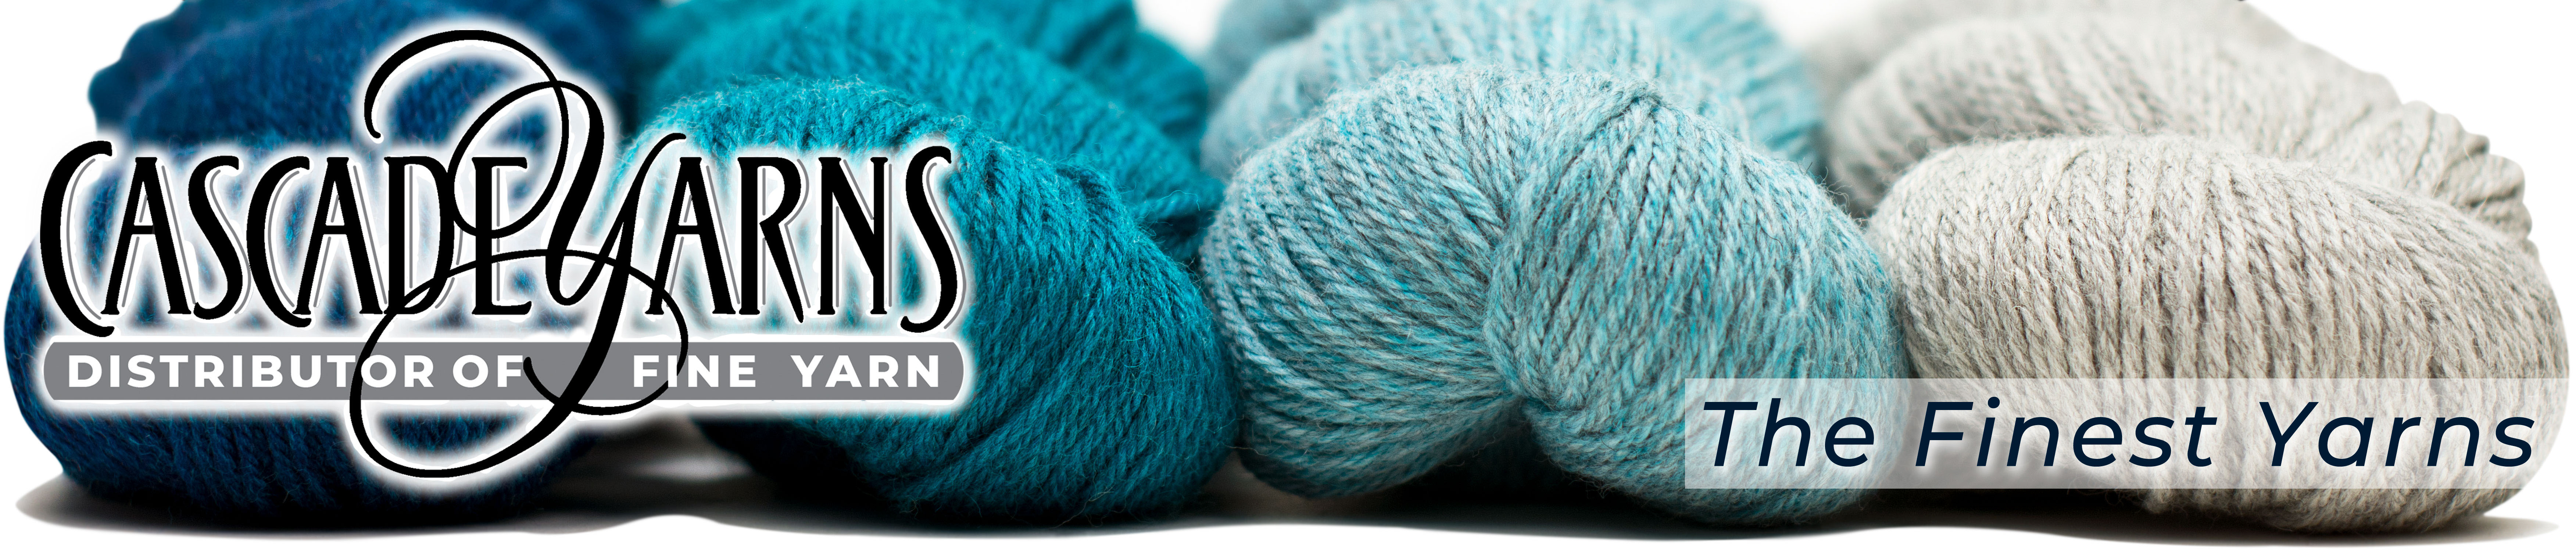 Cascade Yarns | Distributor Of Fine Yarns -- The Finest Yarns [header image]